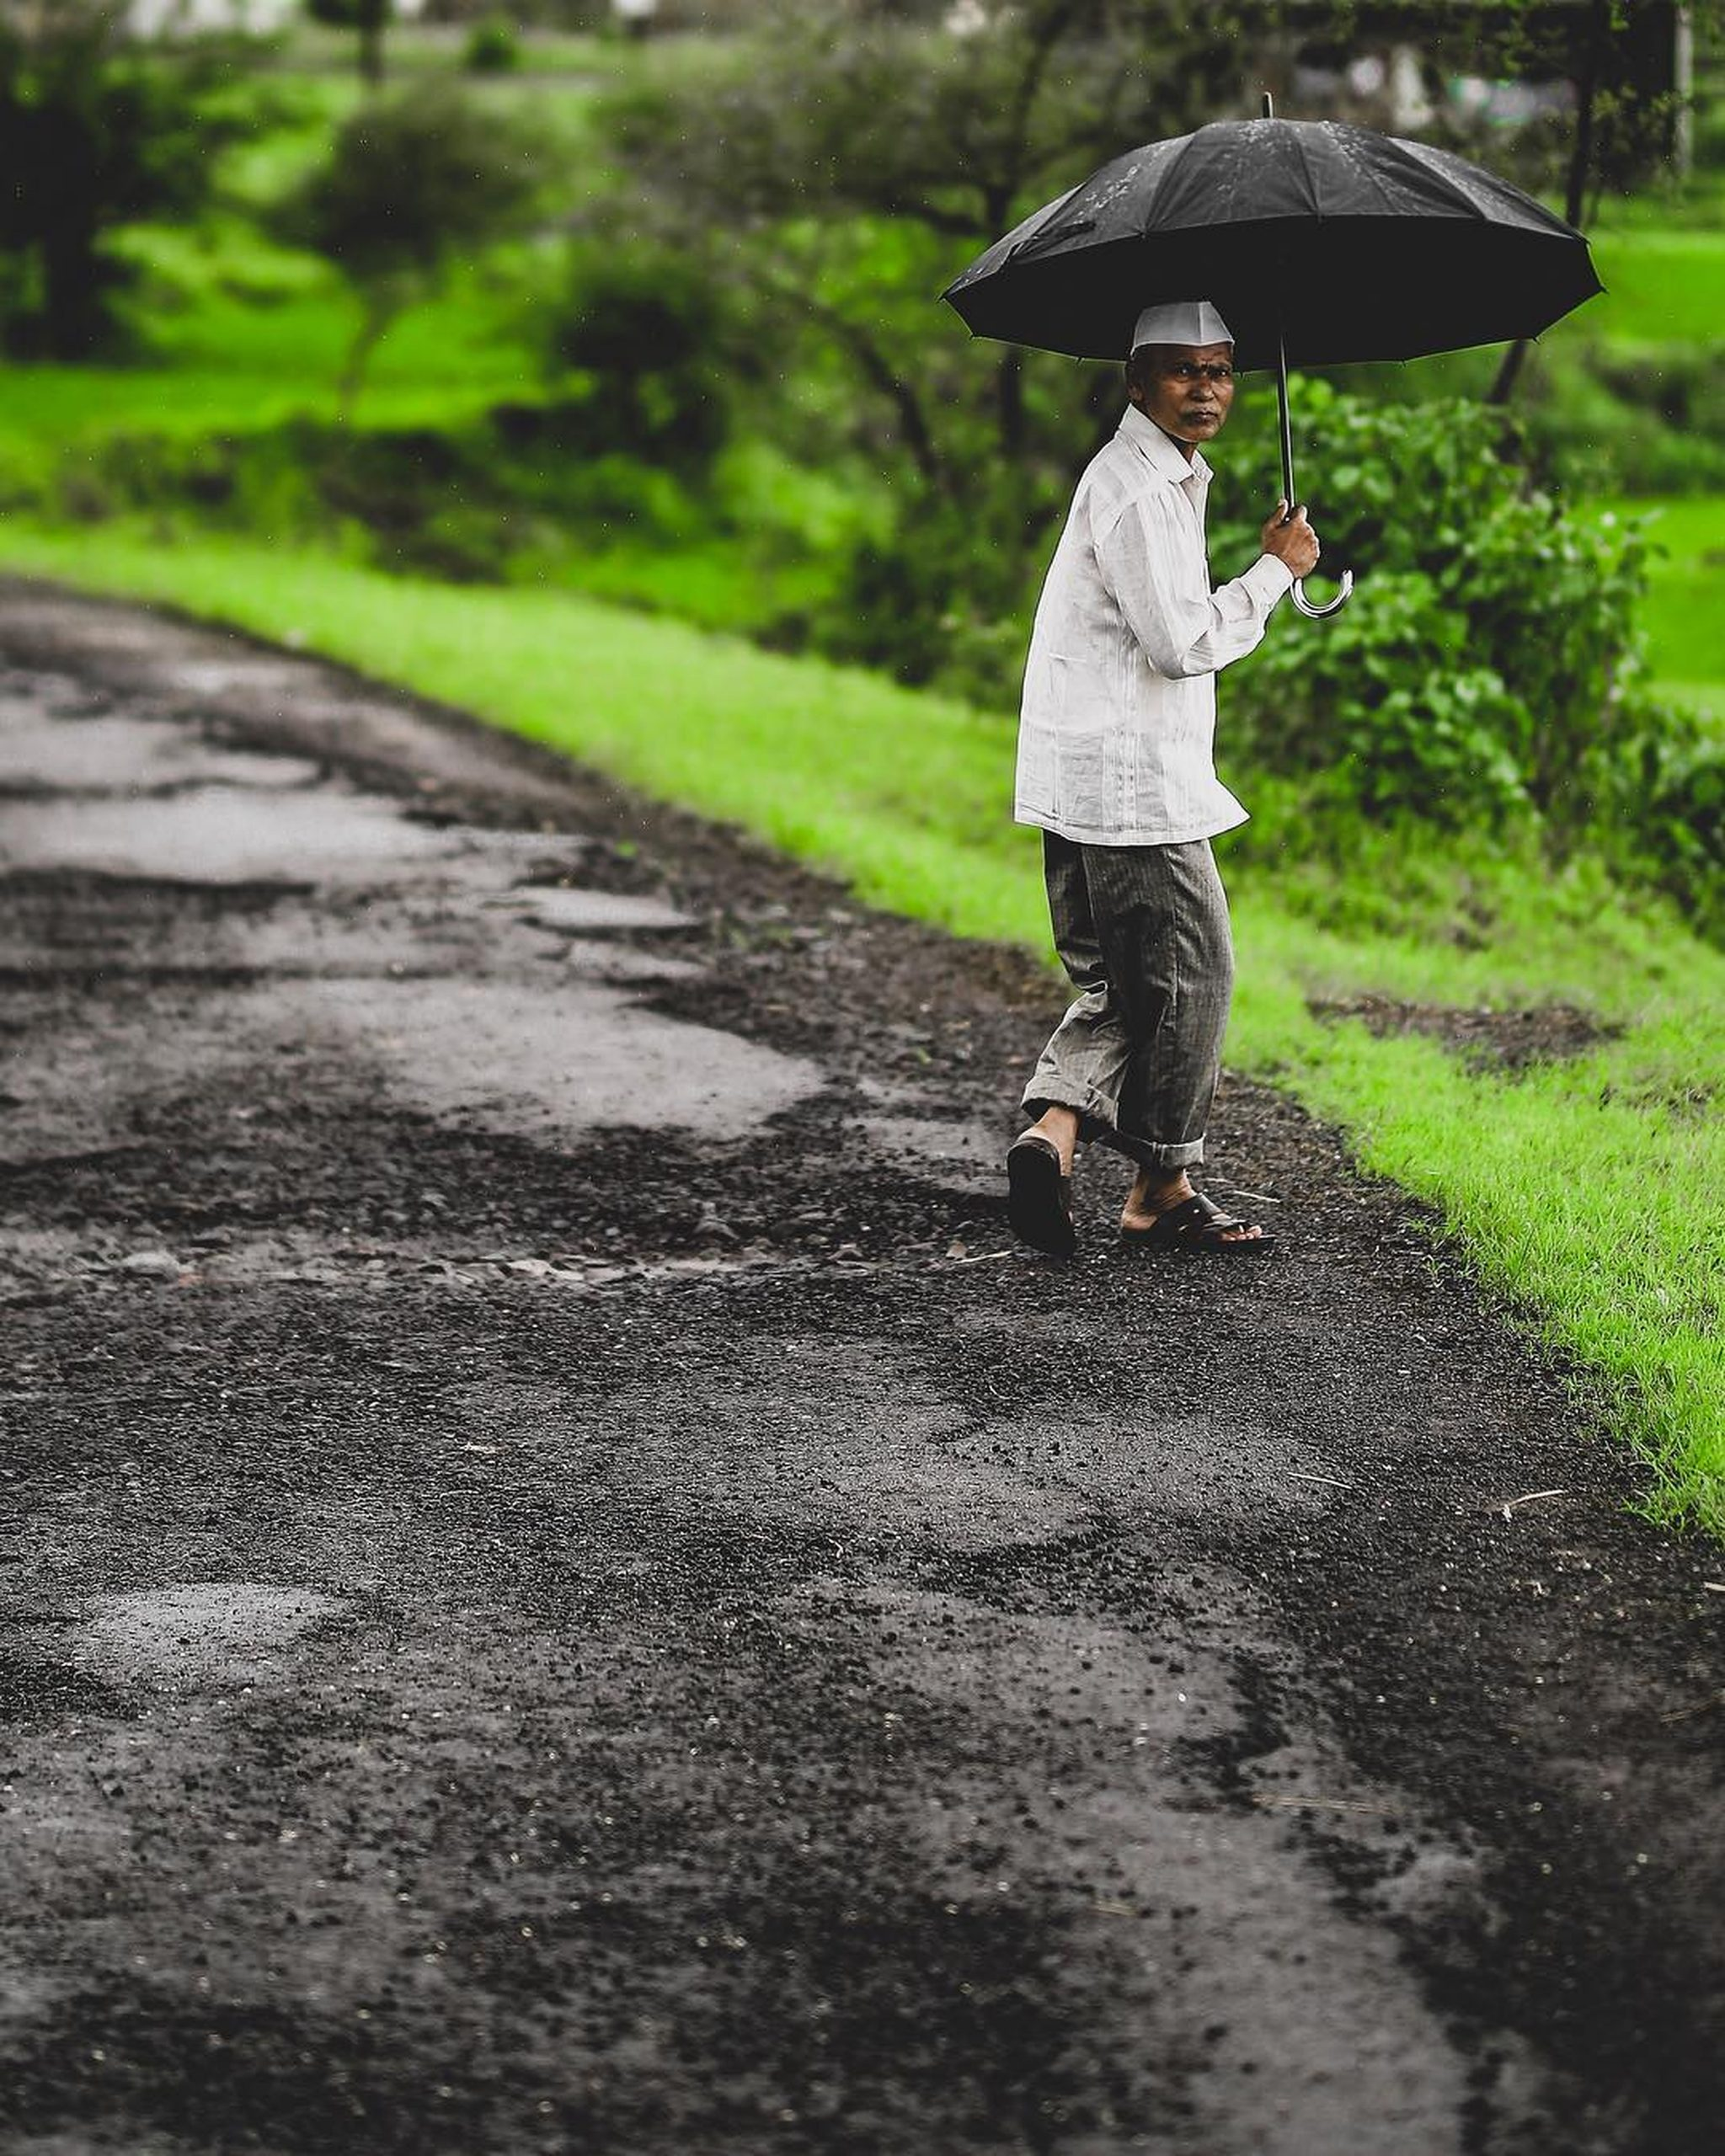 An old man with umbrella on a rainy day.